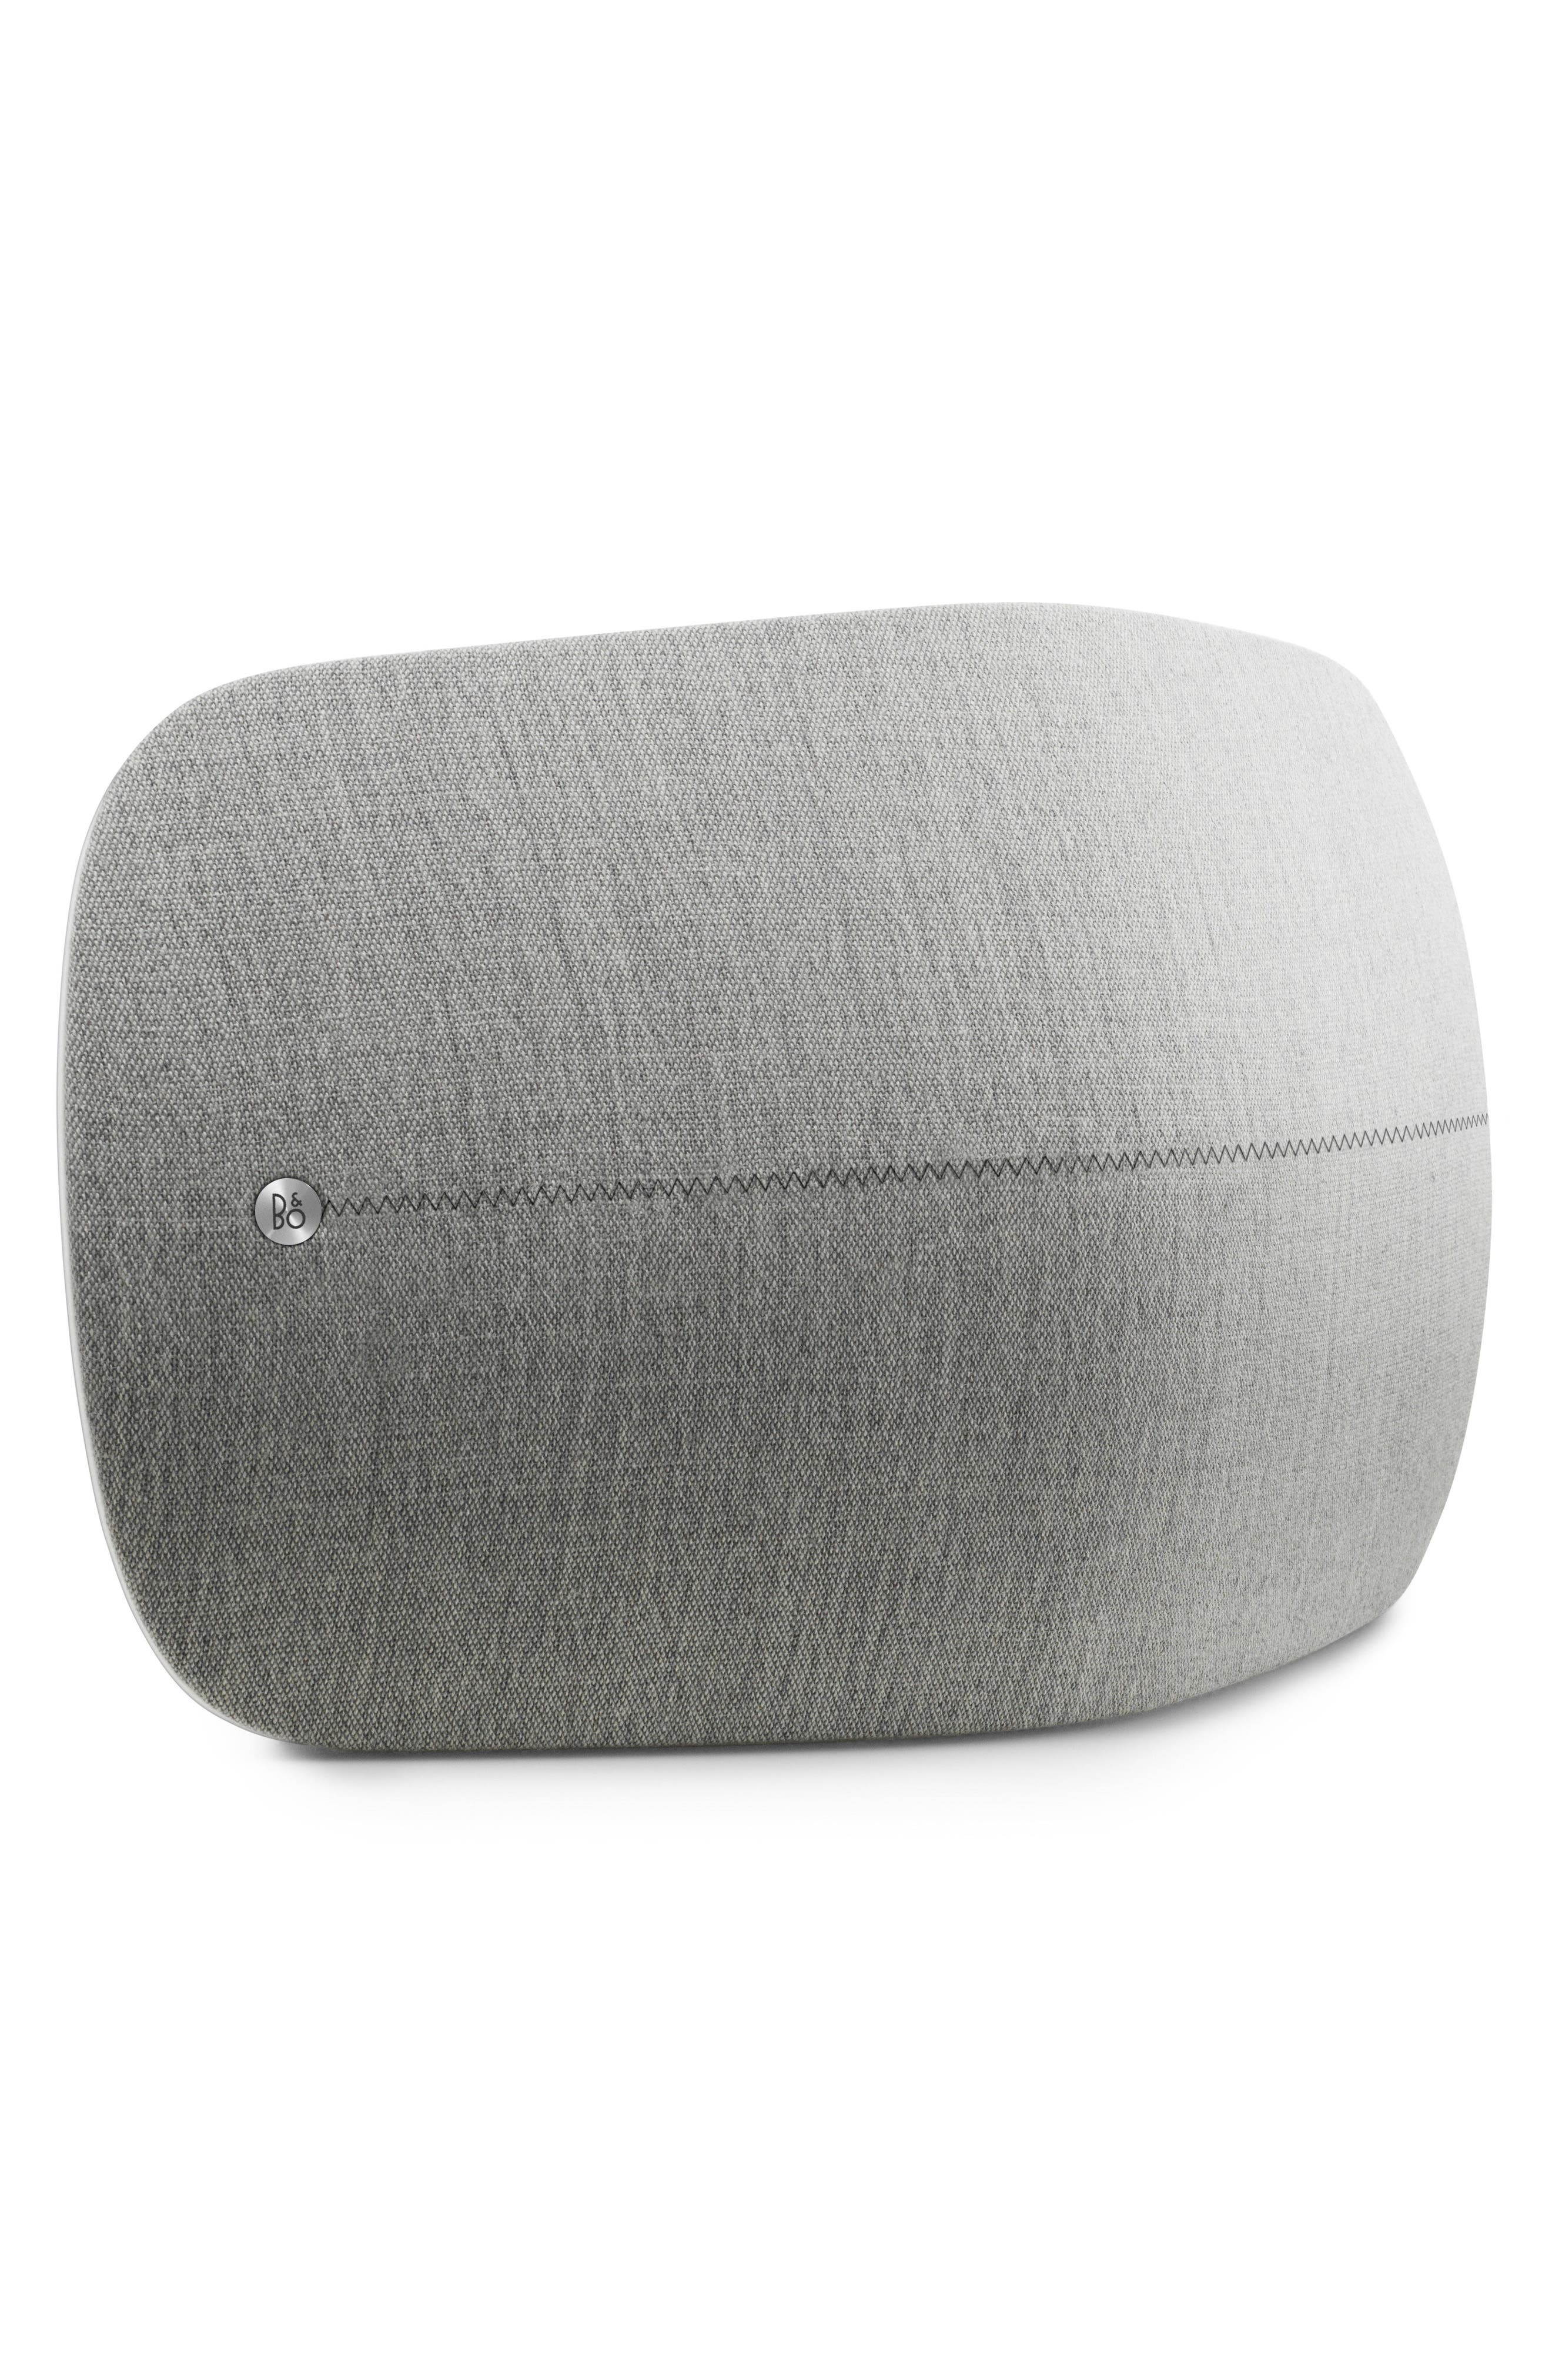 B&O PLAY A6 Connected Wireless Speaker,                             Main thumbnail 1, color,